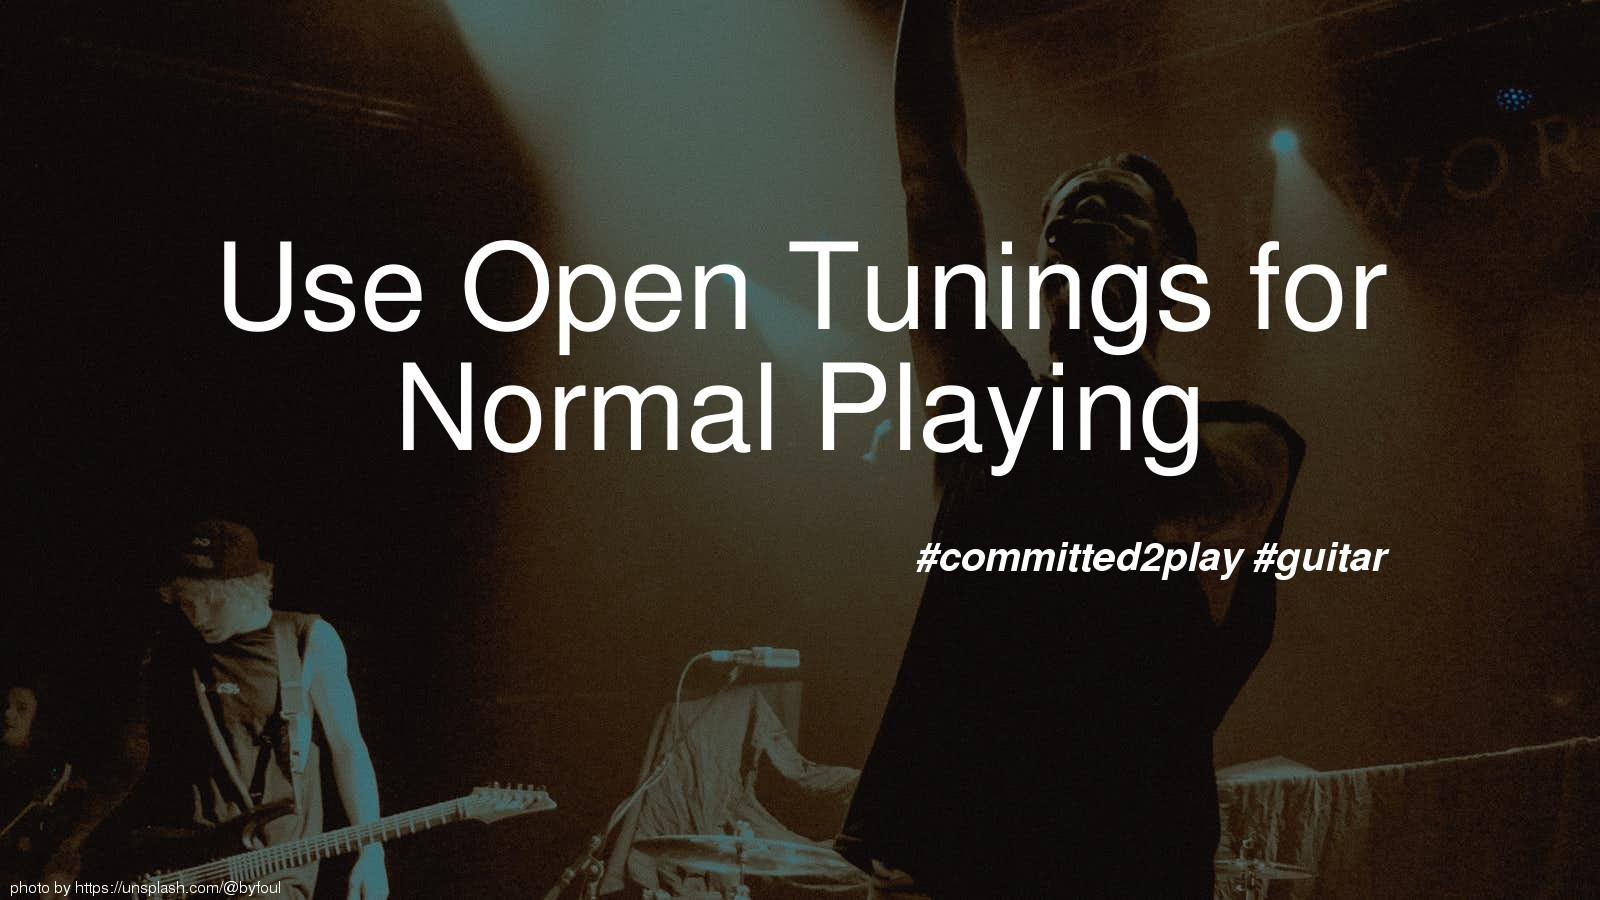 Use Open Tunings for Normal Playing